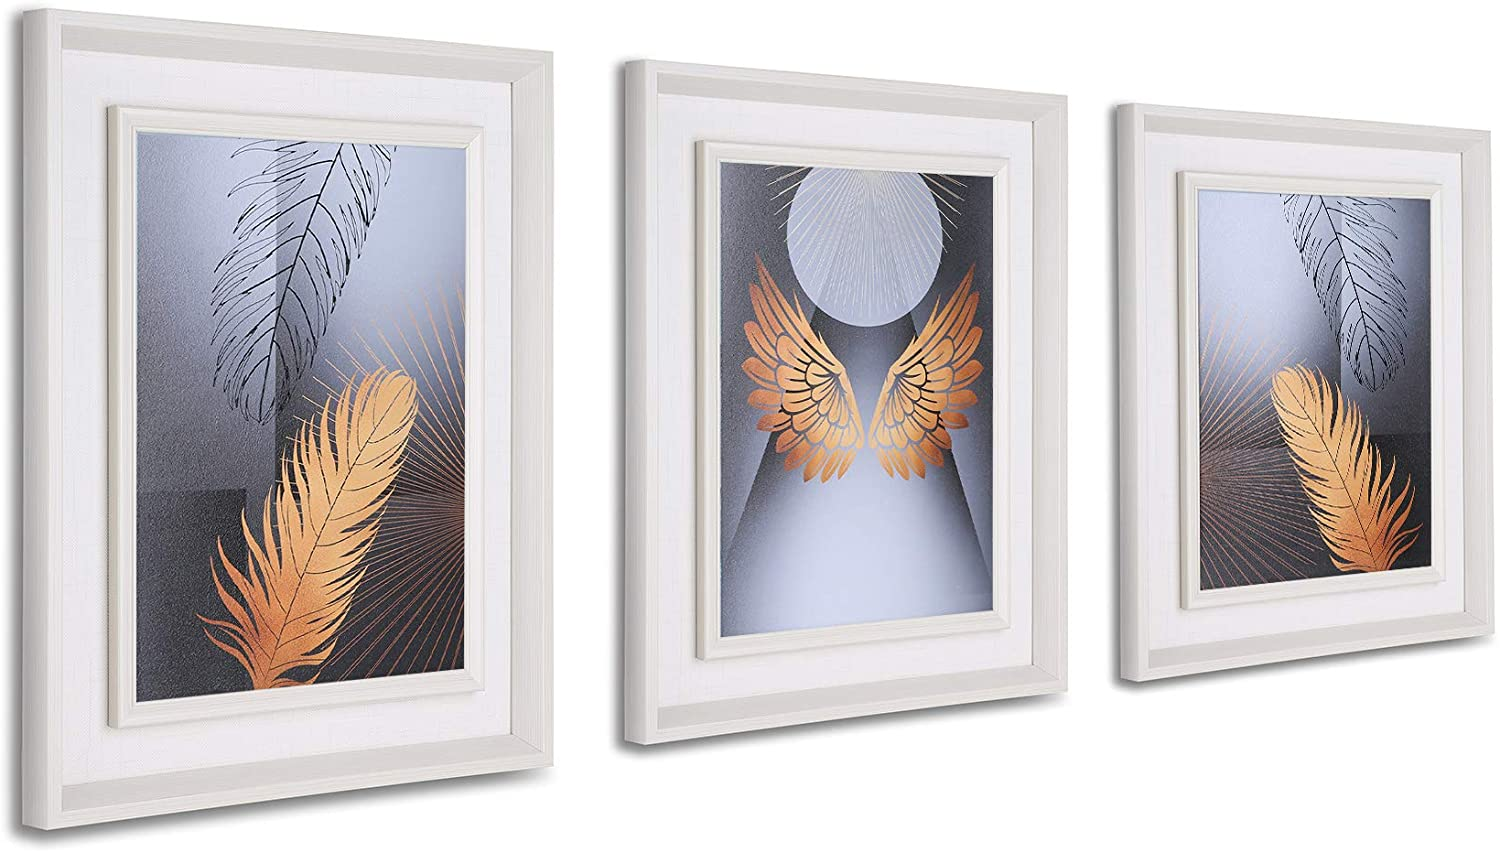 SuXiuSilk 3 Pieces Canvas Wall Art, Golden Feather Prints Wall Decor Abstract Art Painting Contemporary Modern Picture Living Room Kitchen Office Home Decor (Golden Feather)